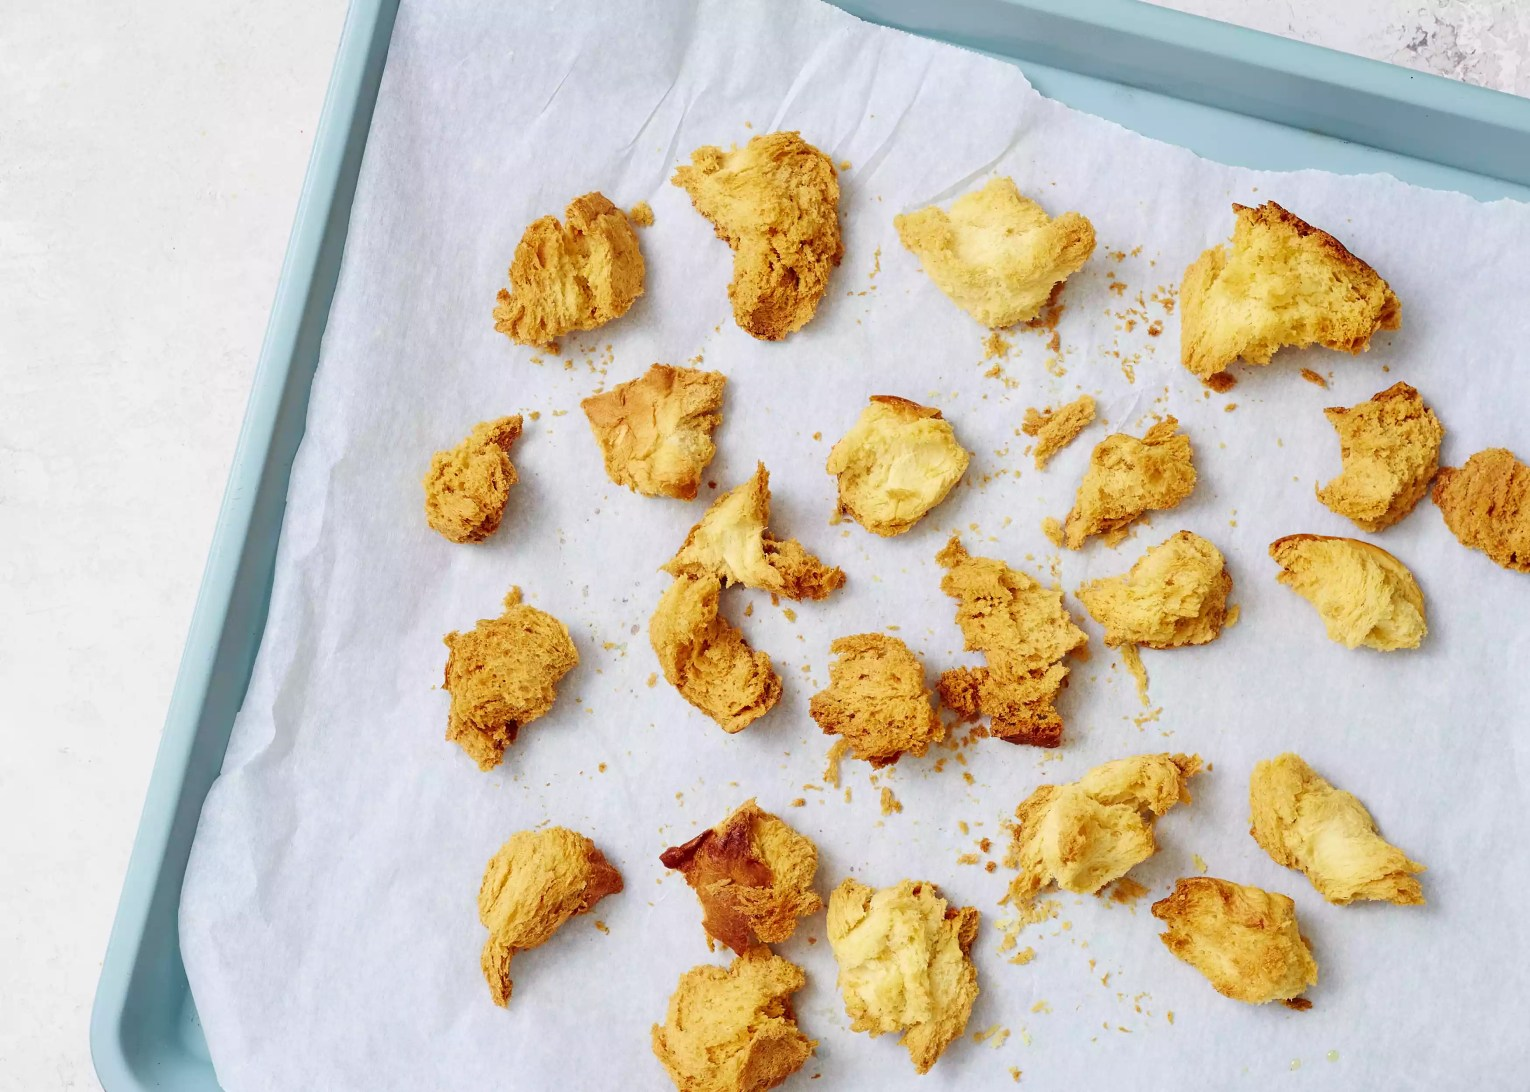 croutons on a parchment paper lined baking sheet